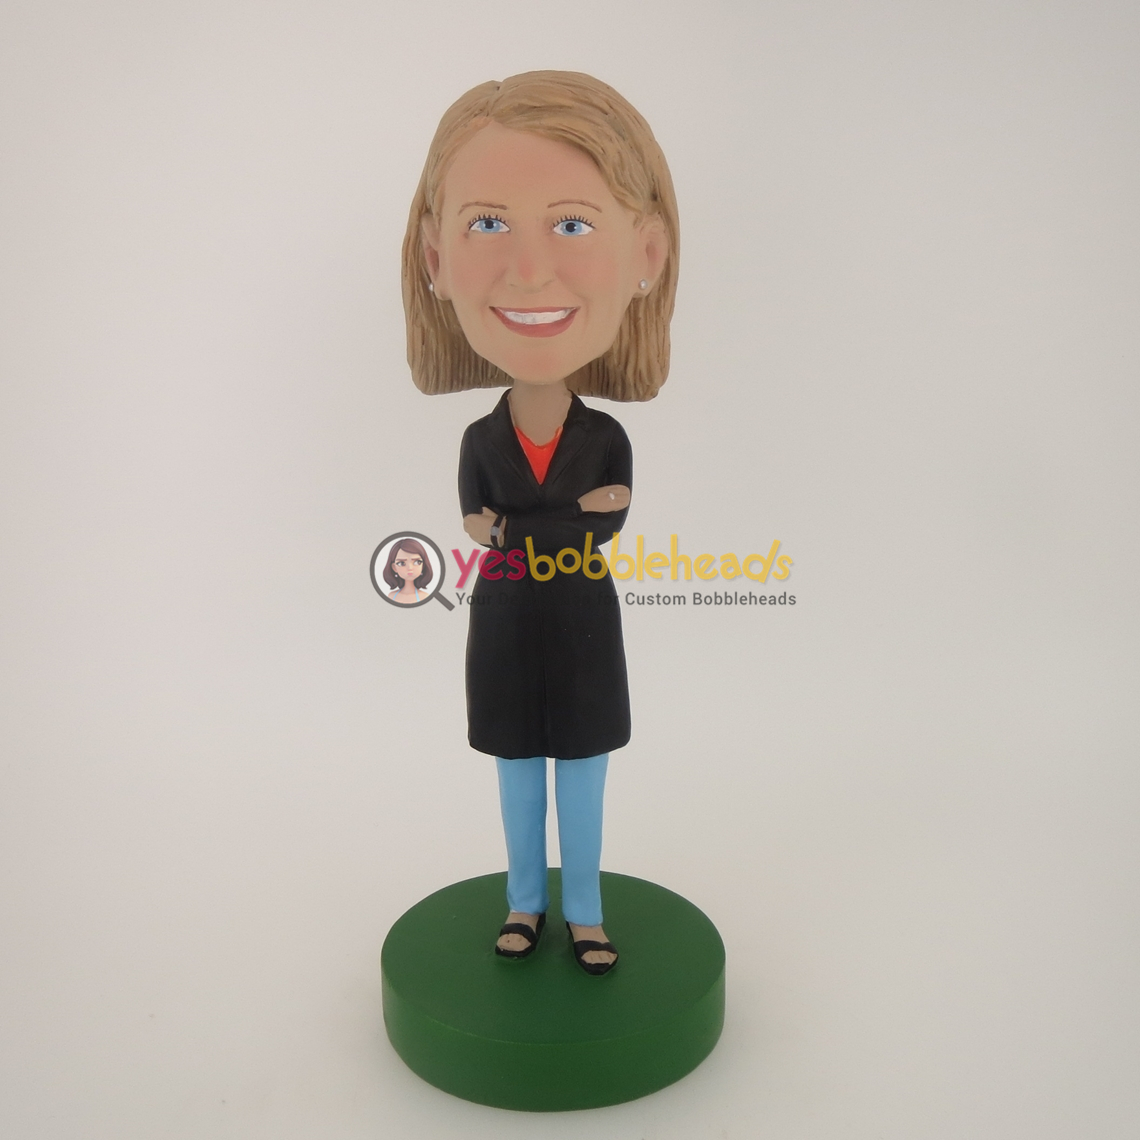 Picture of Custom Bobblehead Doll: Black Clothes Girl